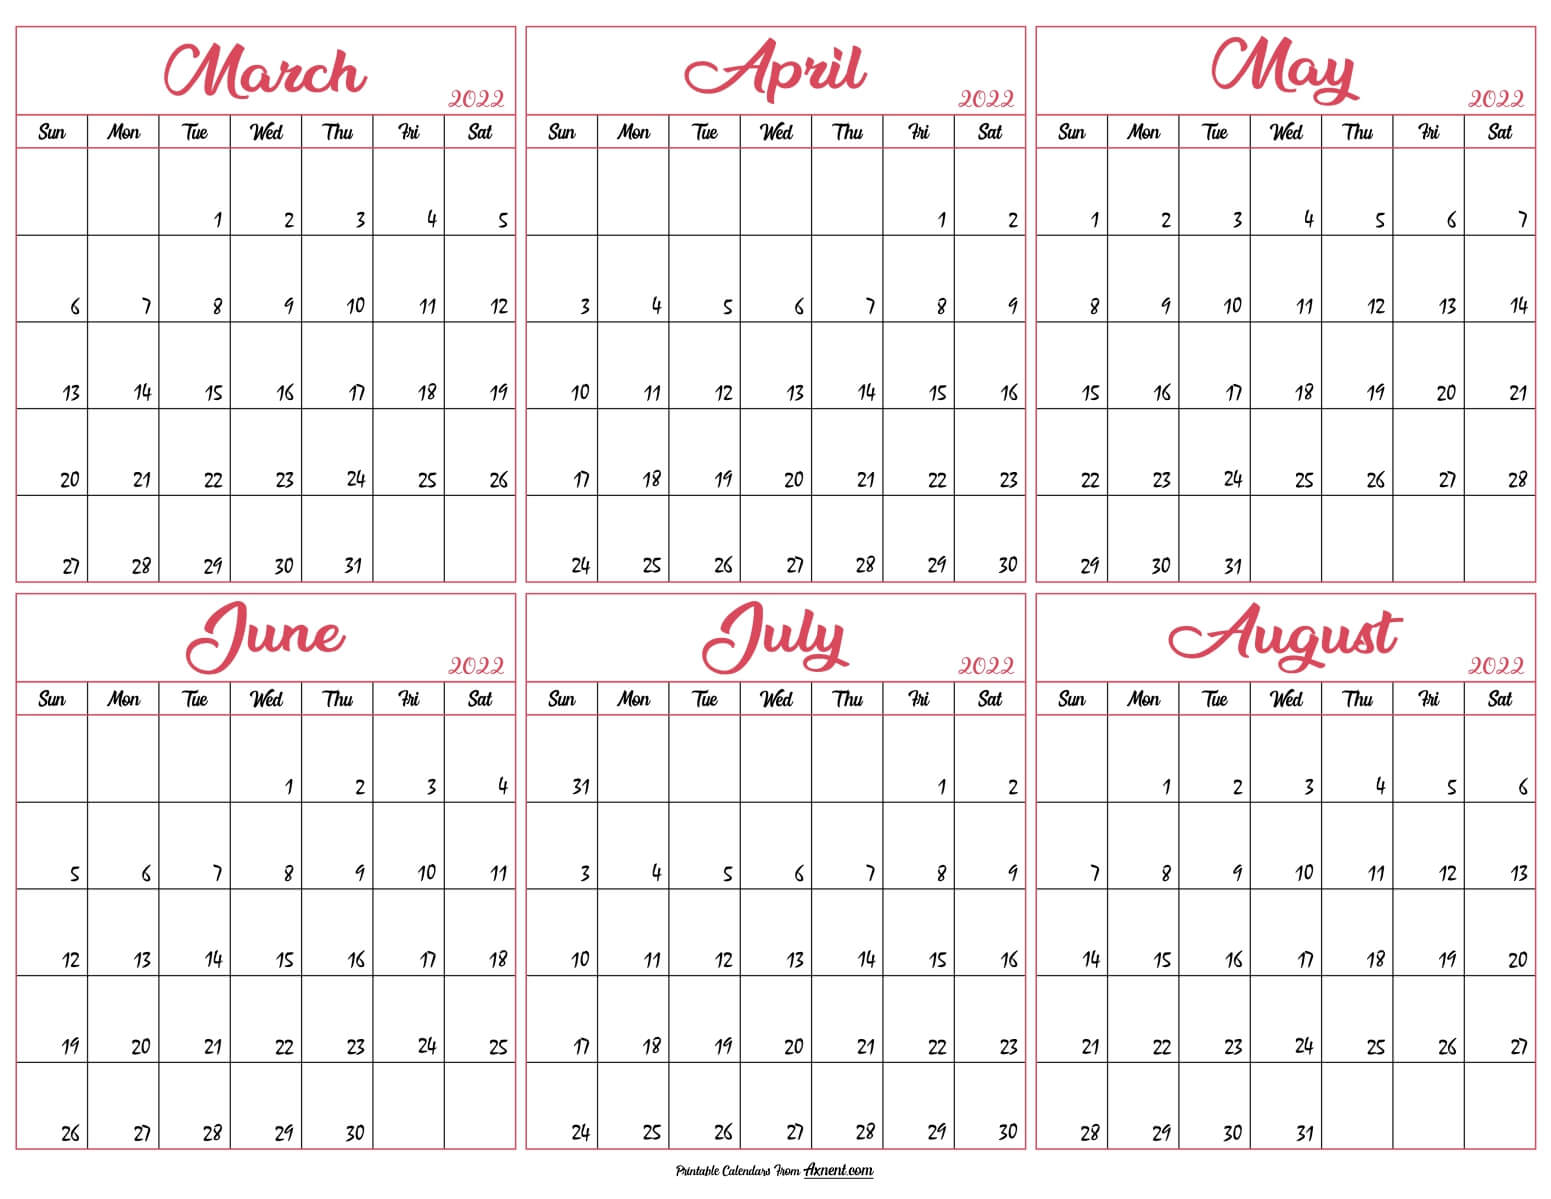 March to August Calendar 2022